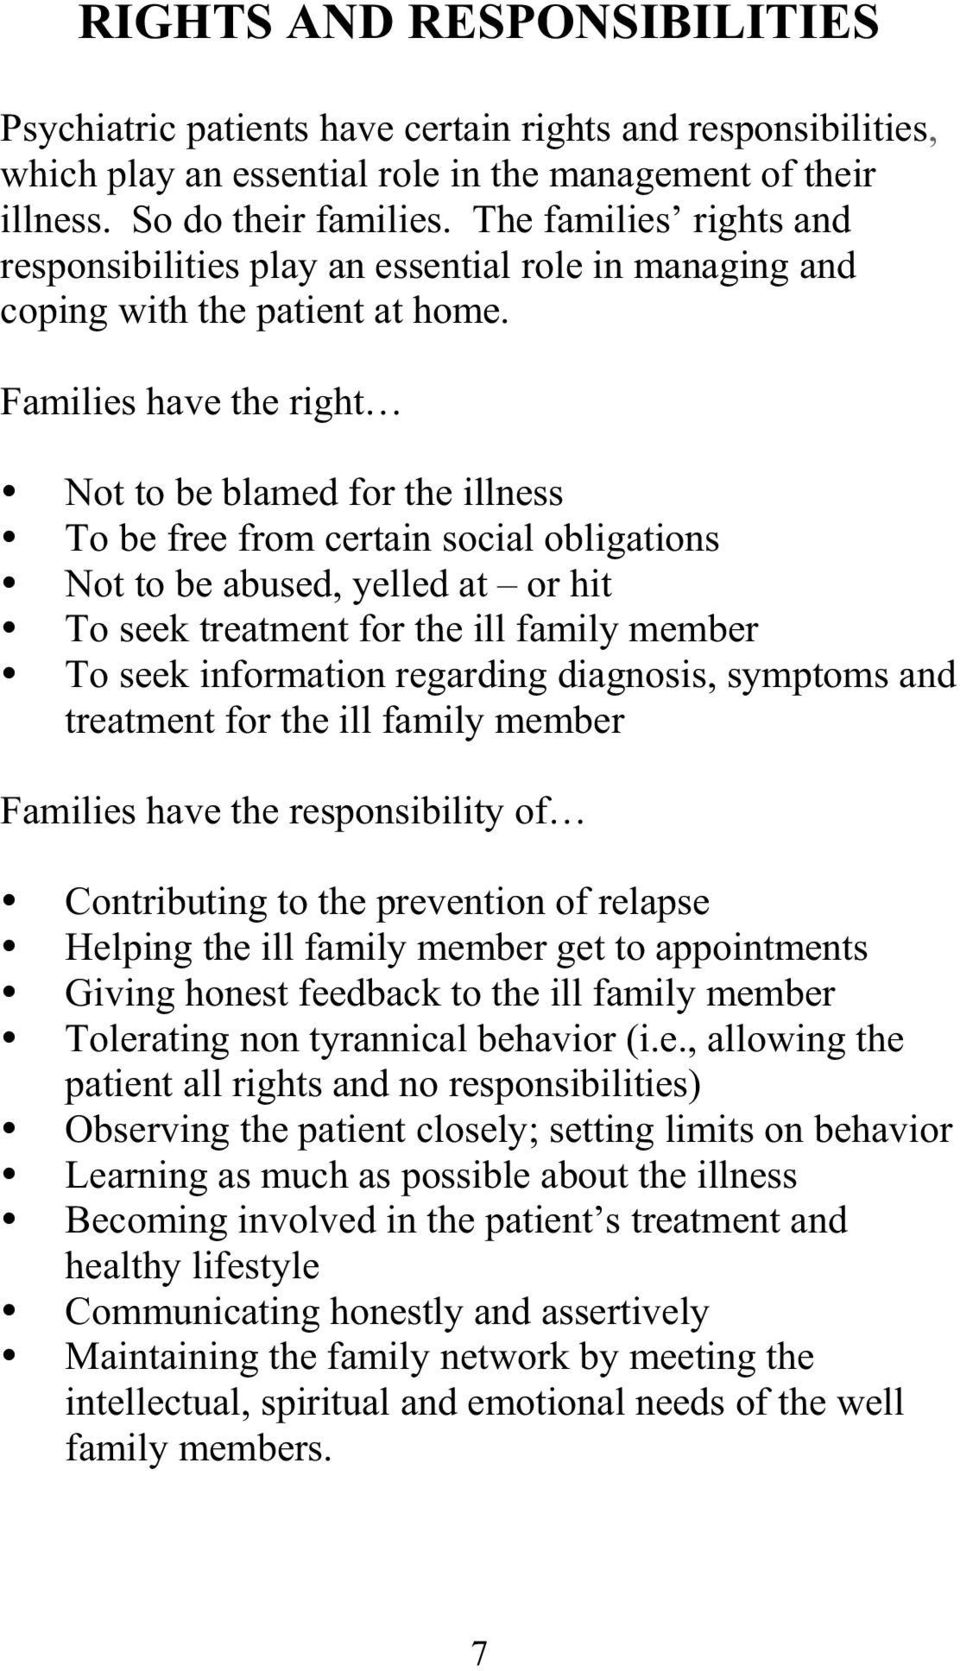 Families have the right Not to be blamed for the illness To be free from certain social obligations Not to be abused, yelled at or hit To seek treatment for the ill family member To seek information